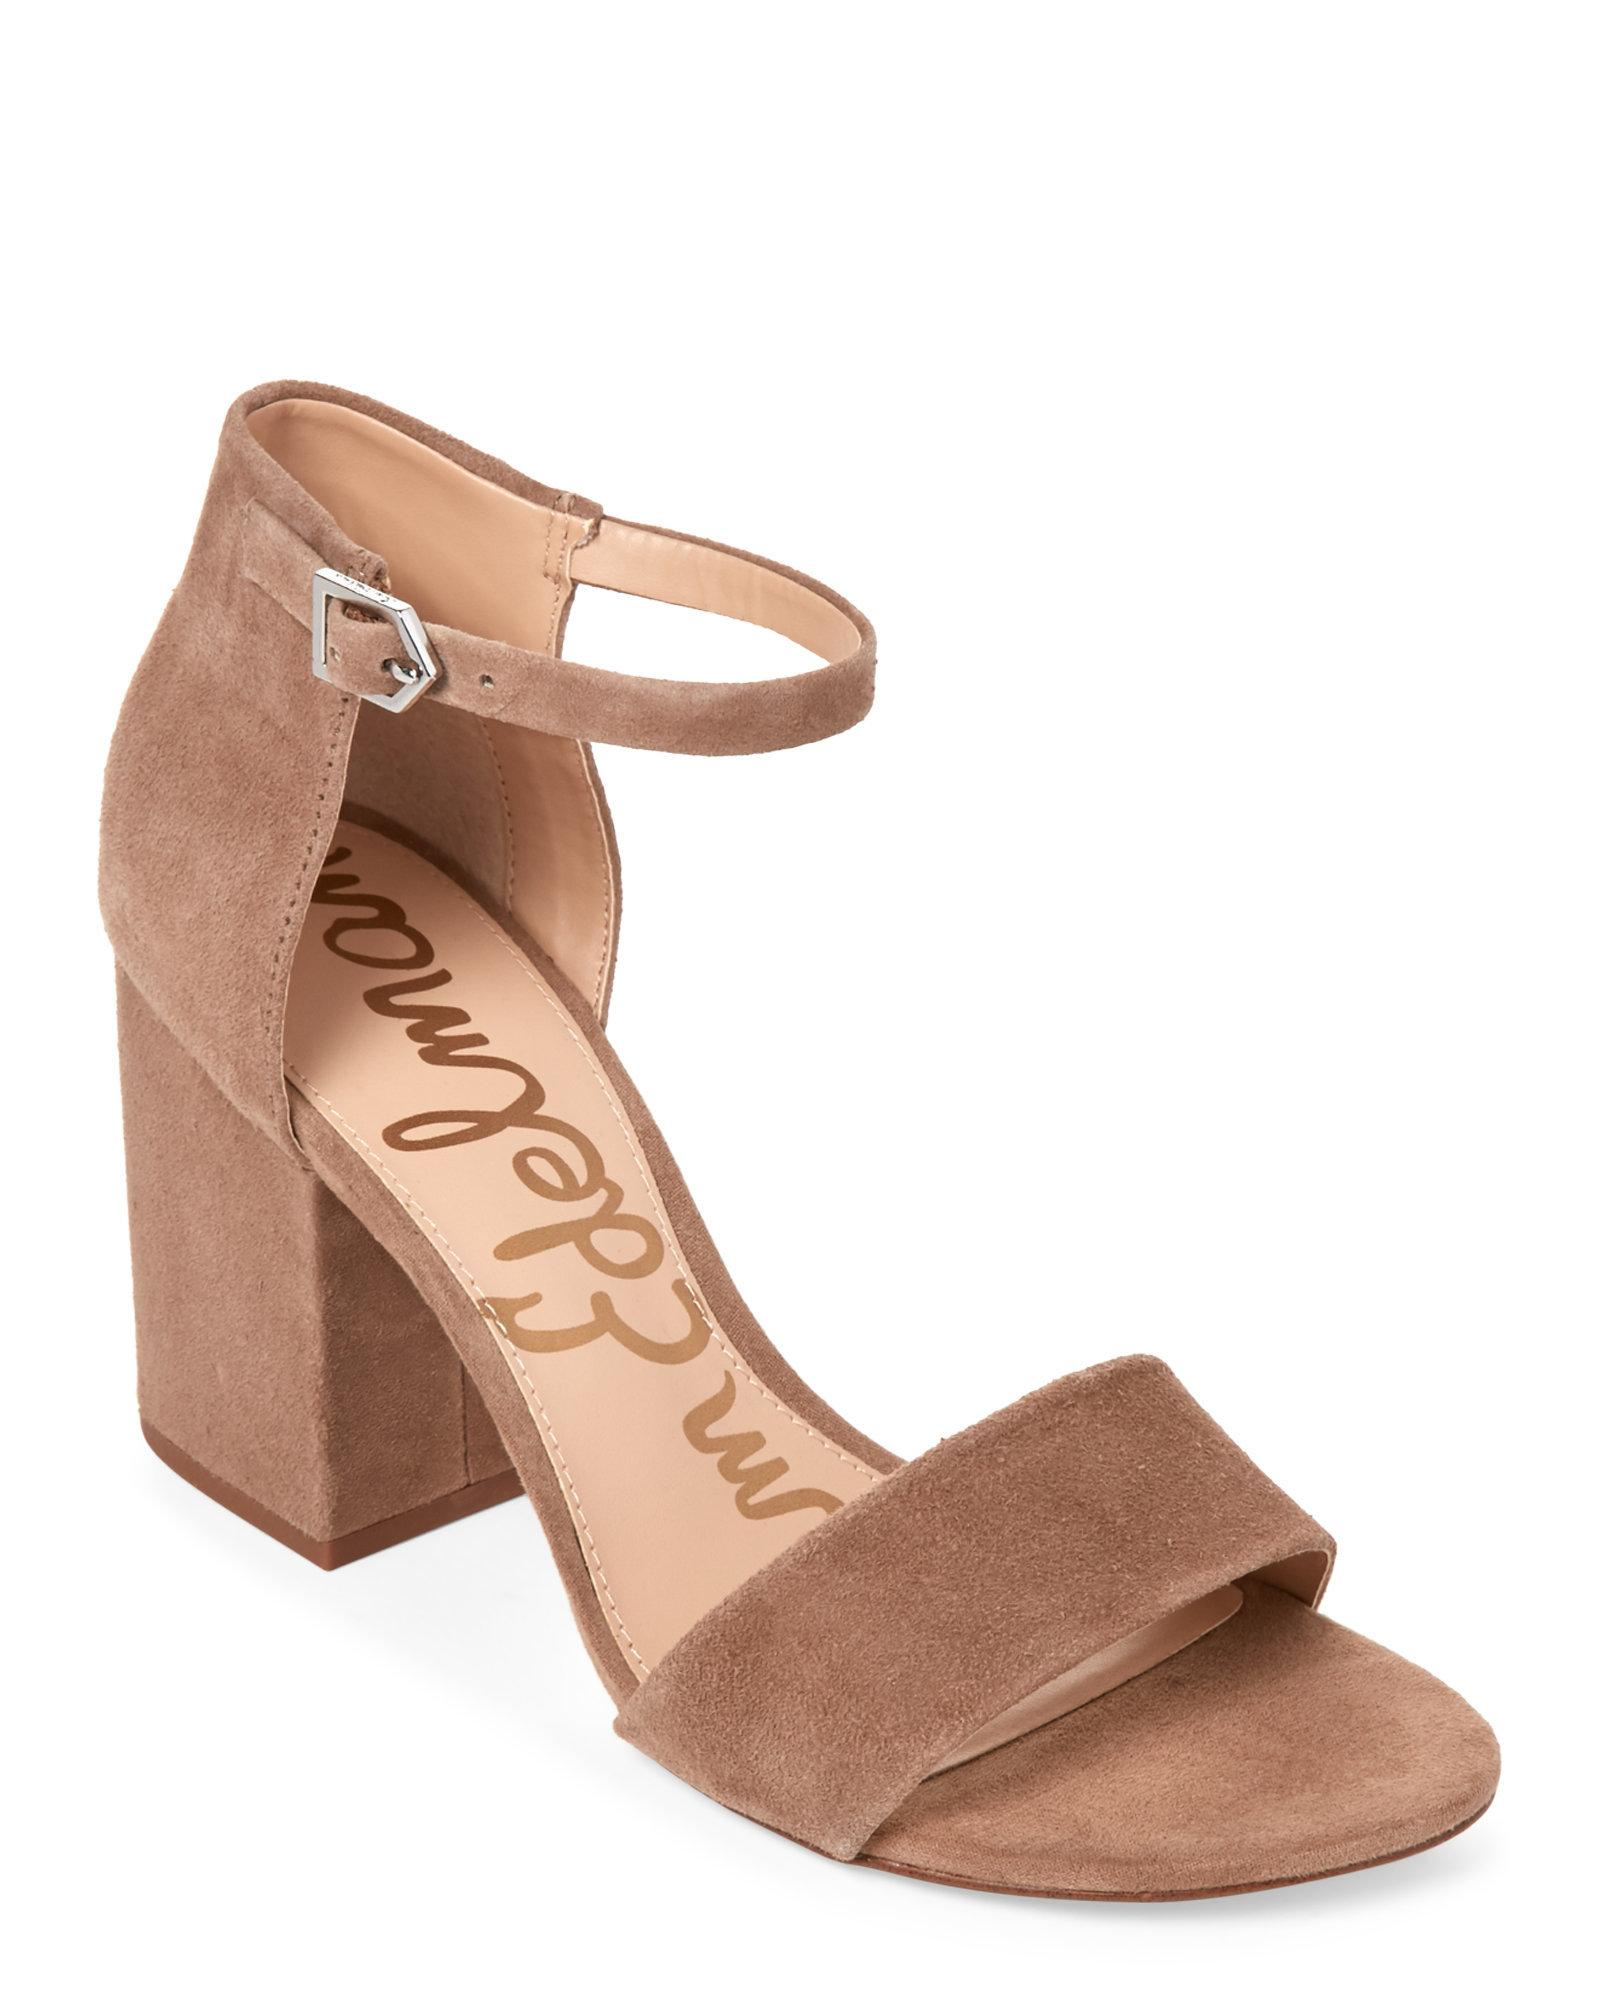 dad1ce372cd Lyst - Sam Edelman Oatmeal Torrence Two-Piece Block Heel Sandals